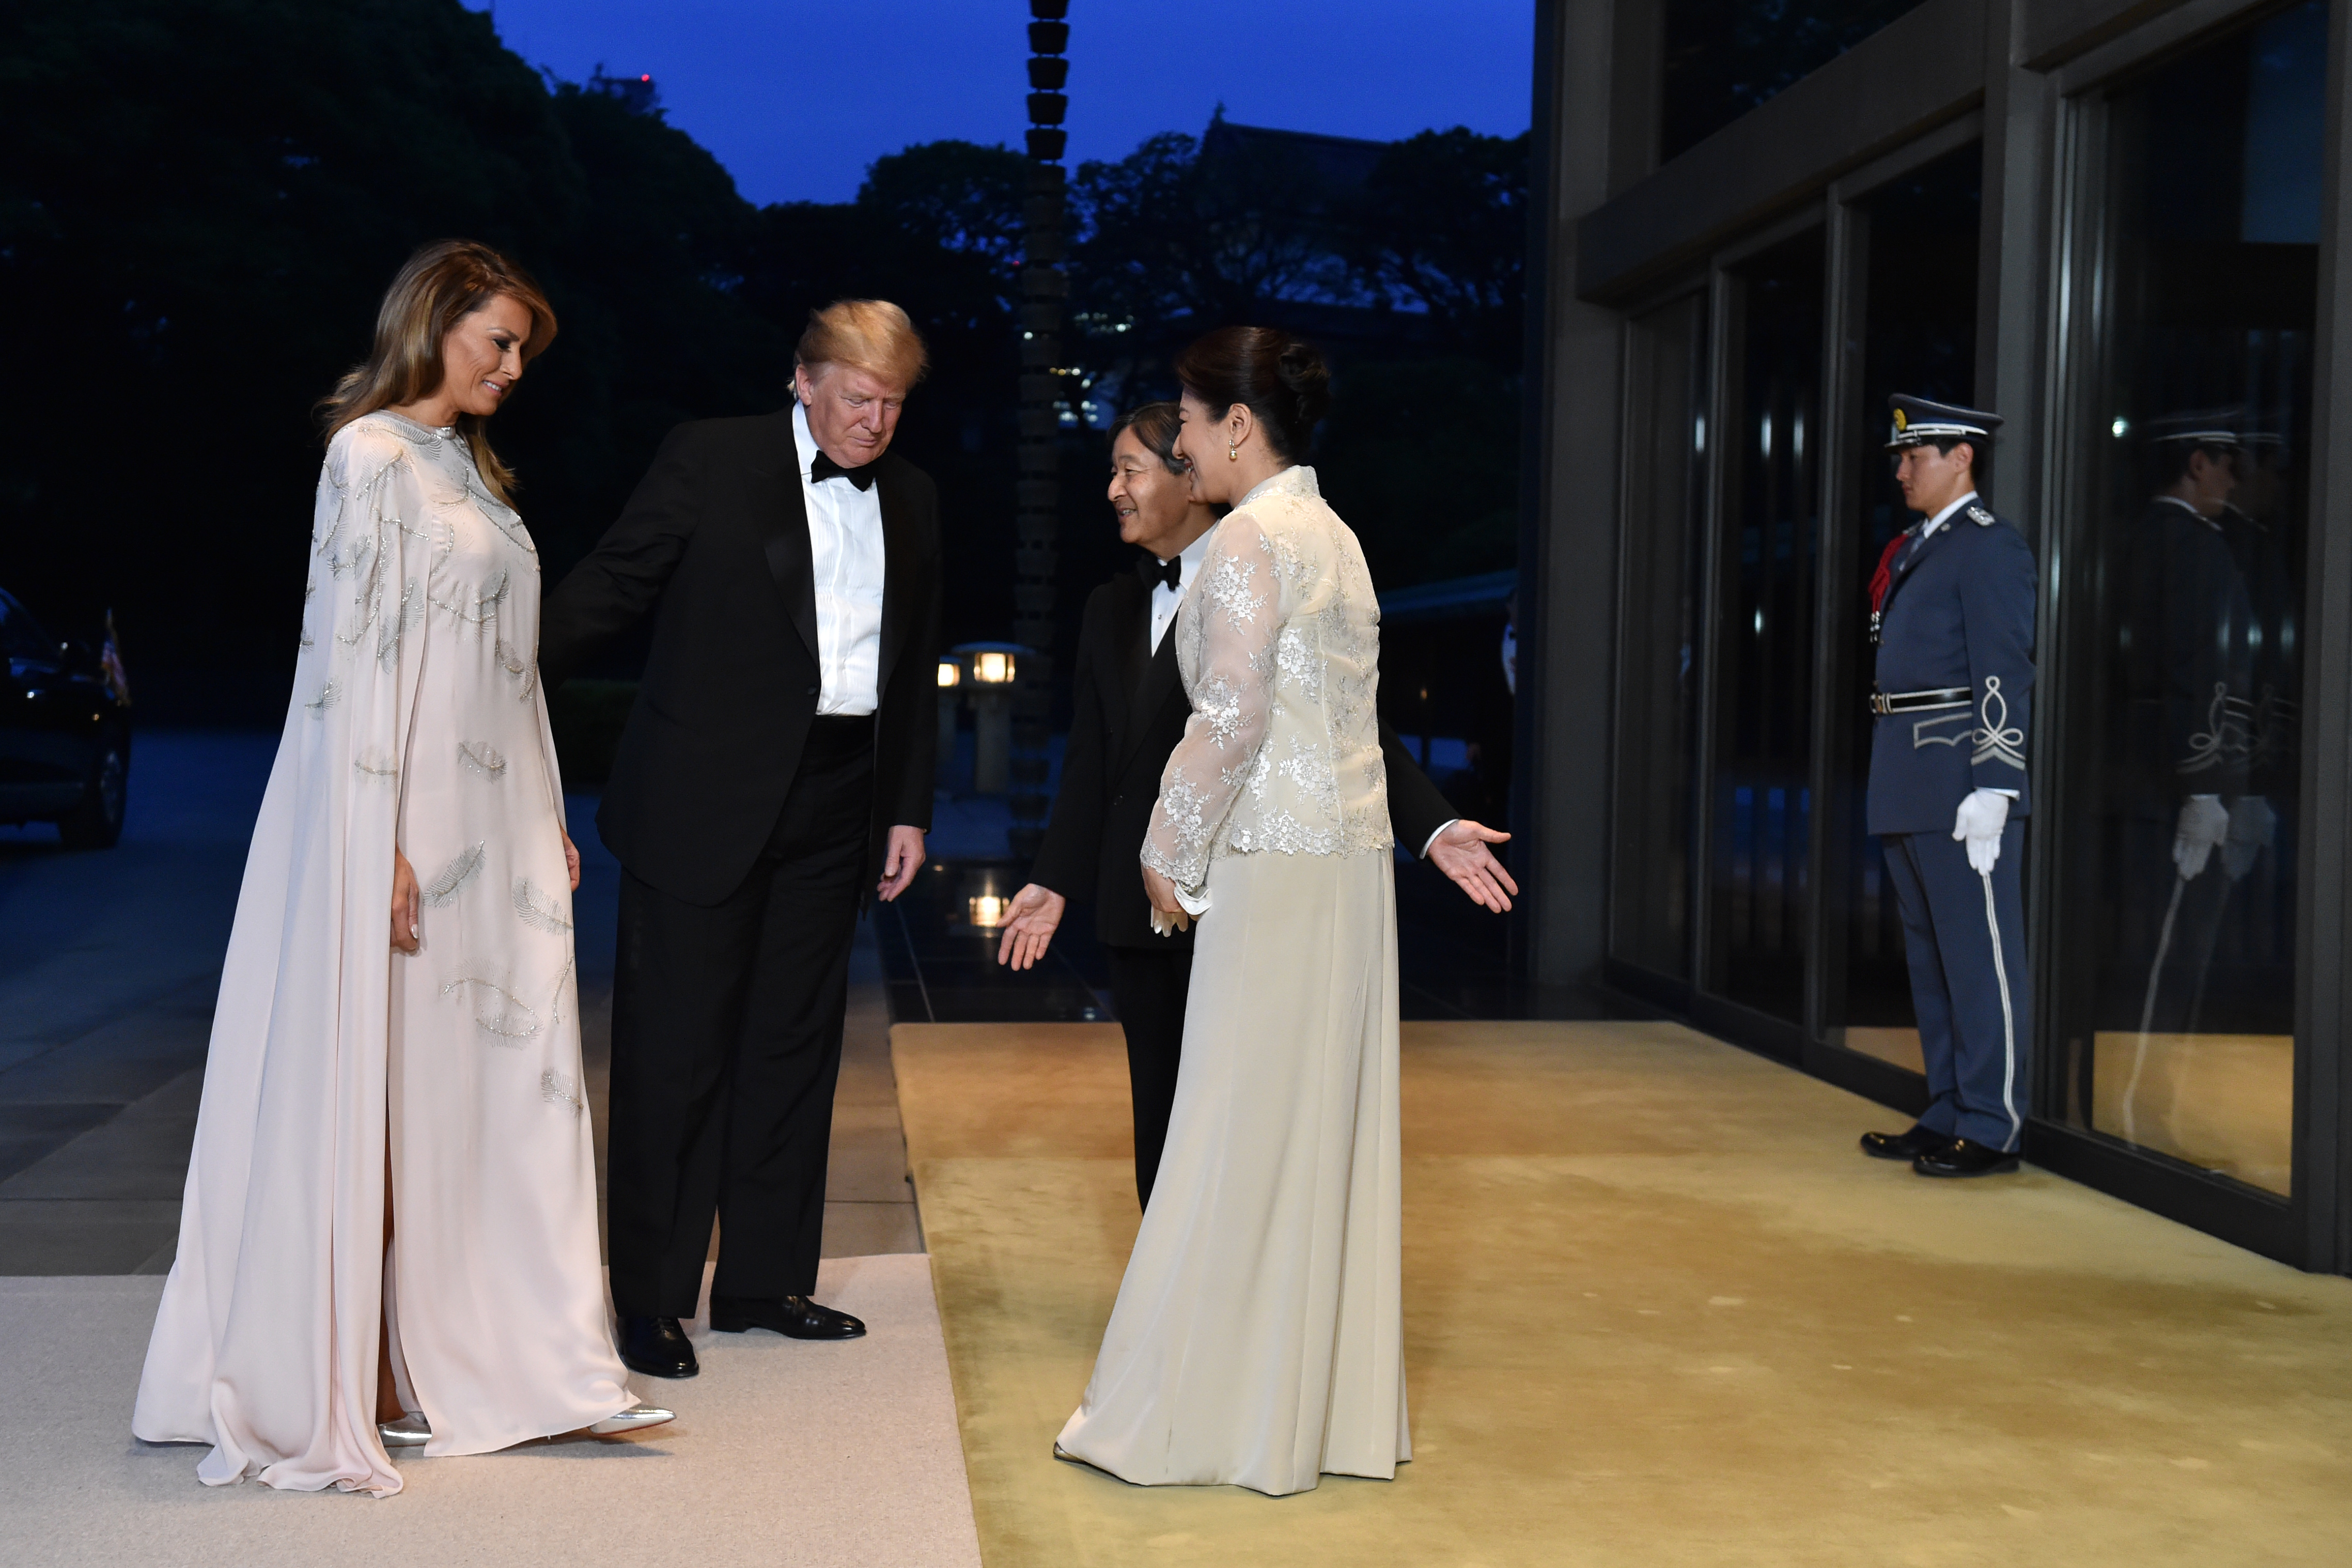 TOKYO, JAPAN - MAY 27: US President Donald Trump (2nd L) and First Lady Melania Trump (L) are greeted by Japan's Emperor Naruhito and Empress Masako upon their arrival at the Imperial Palace for a state banquet on May 27, 2019 in Tokyo, Japan. (Photo by Kazuhiro Nogi - Pool/Getty Images)